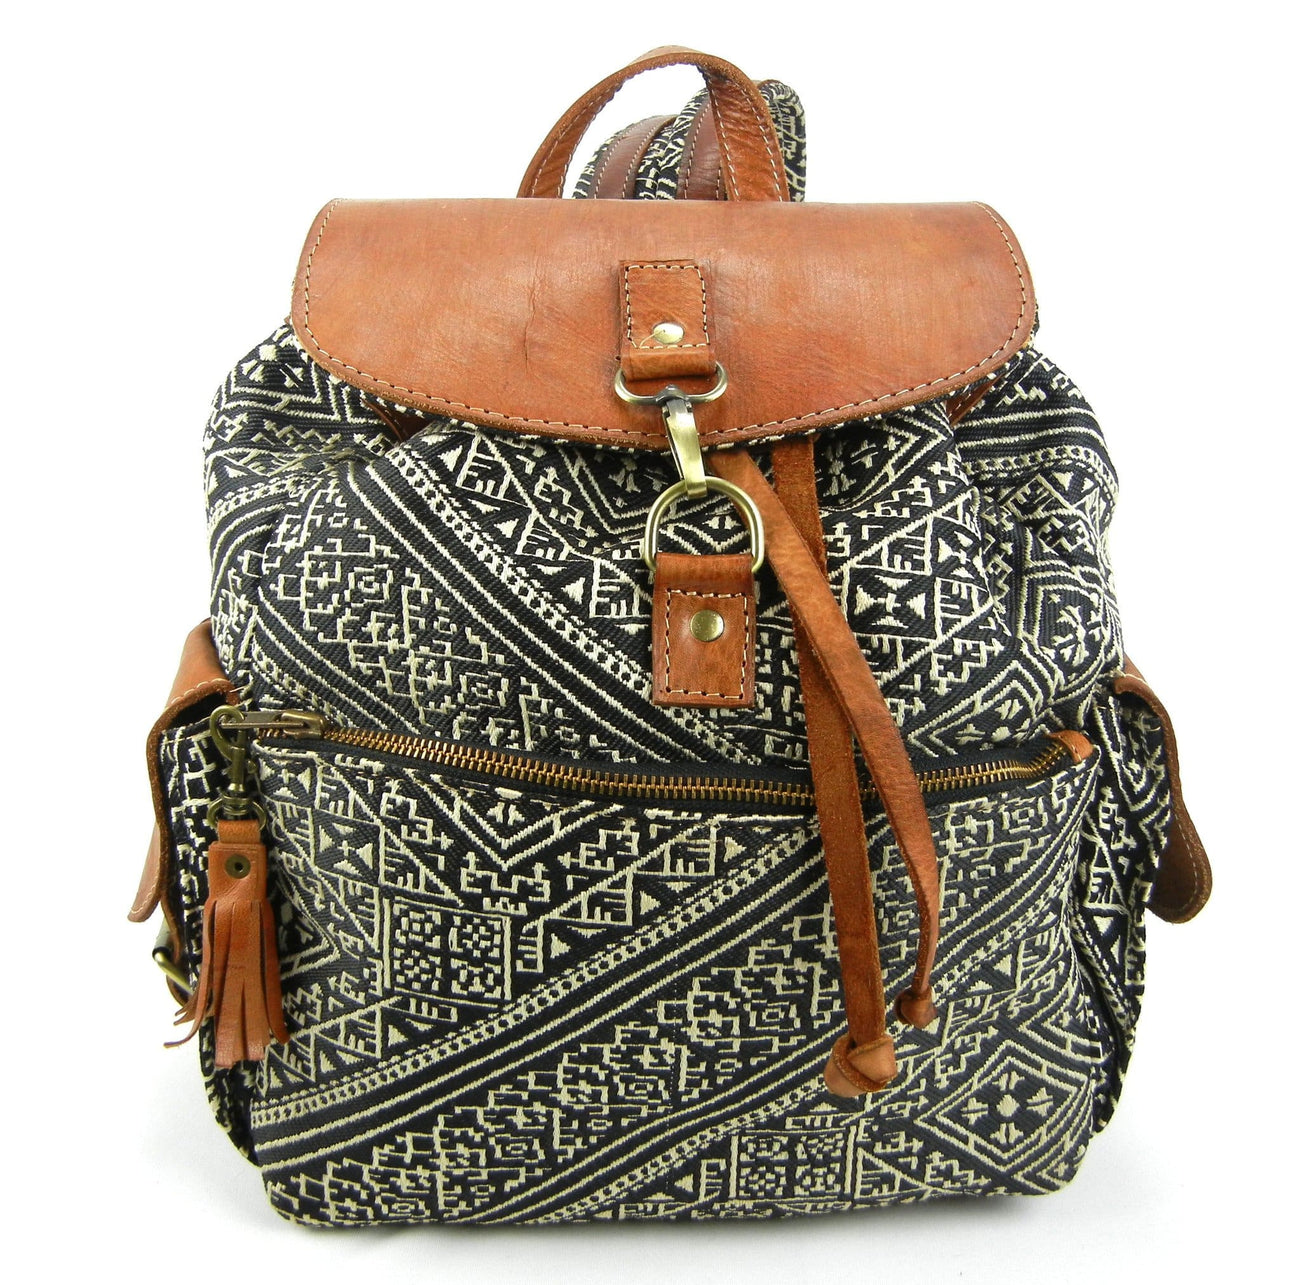 Silk Brocade and Leather Backpack - Hand-woven Geometric Motif